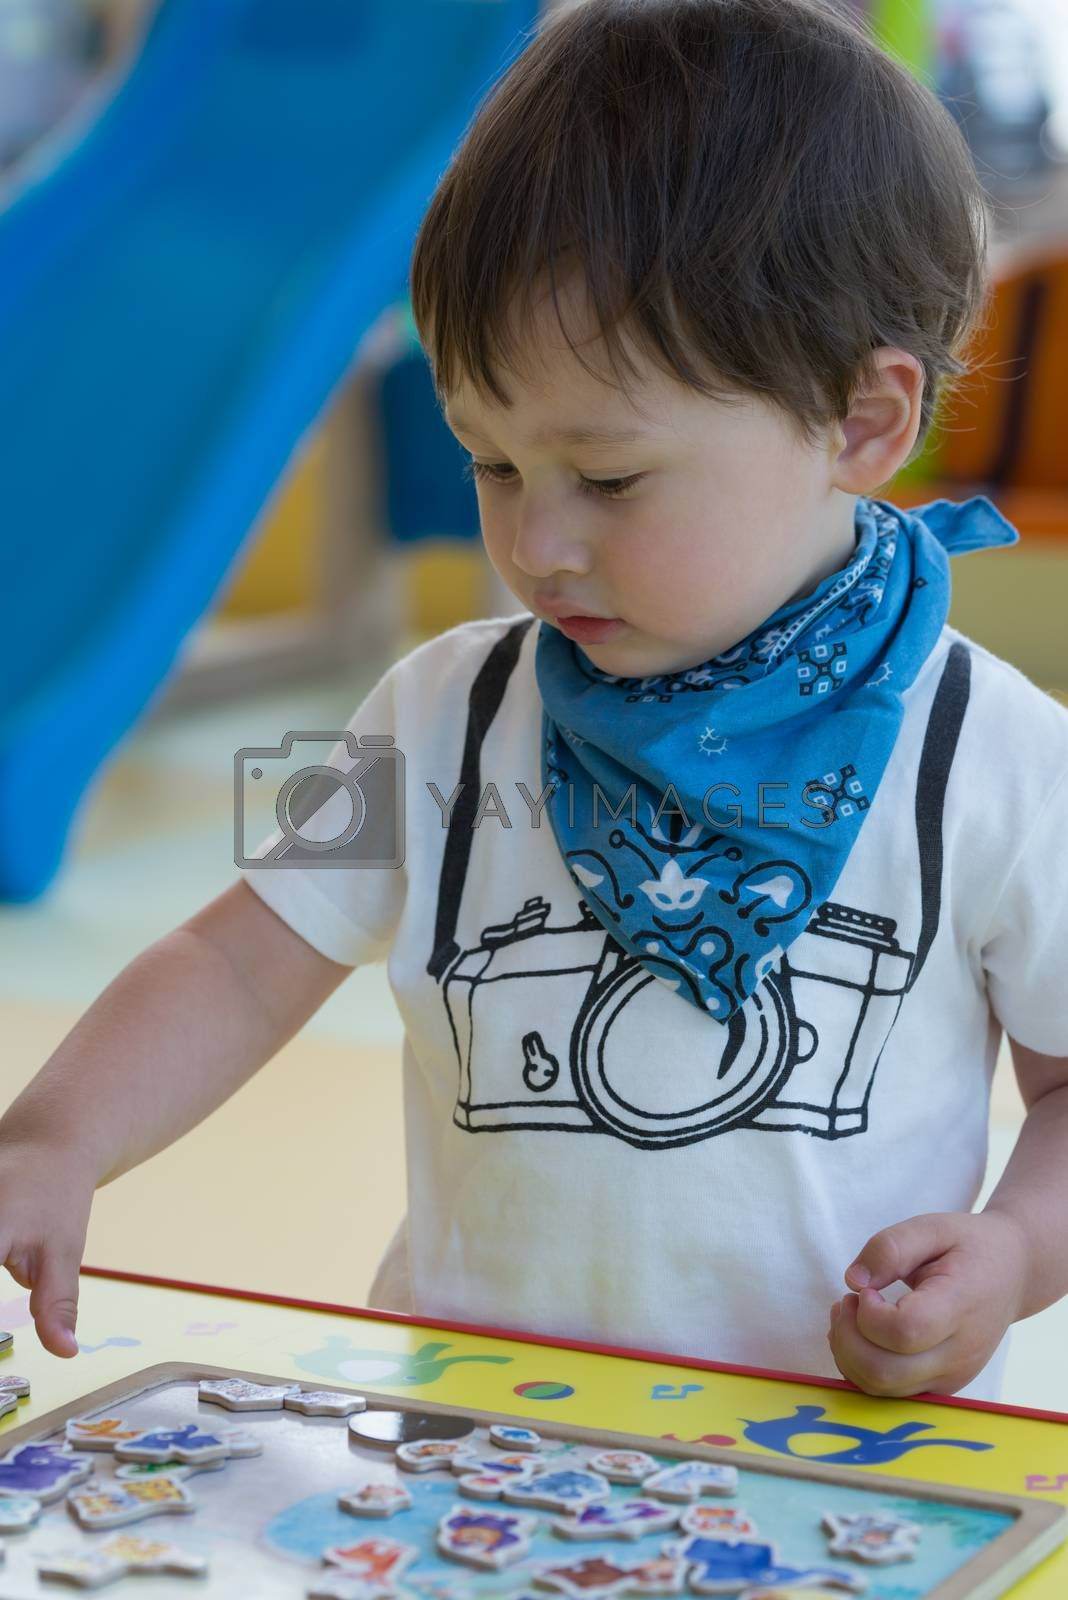 A cute young boy with a camera design t-shirt making a puzzle of many animals.